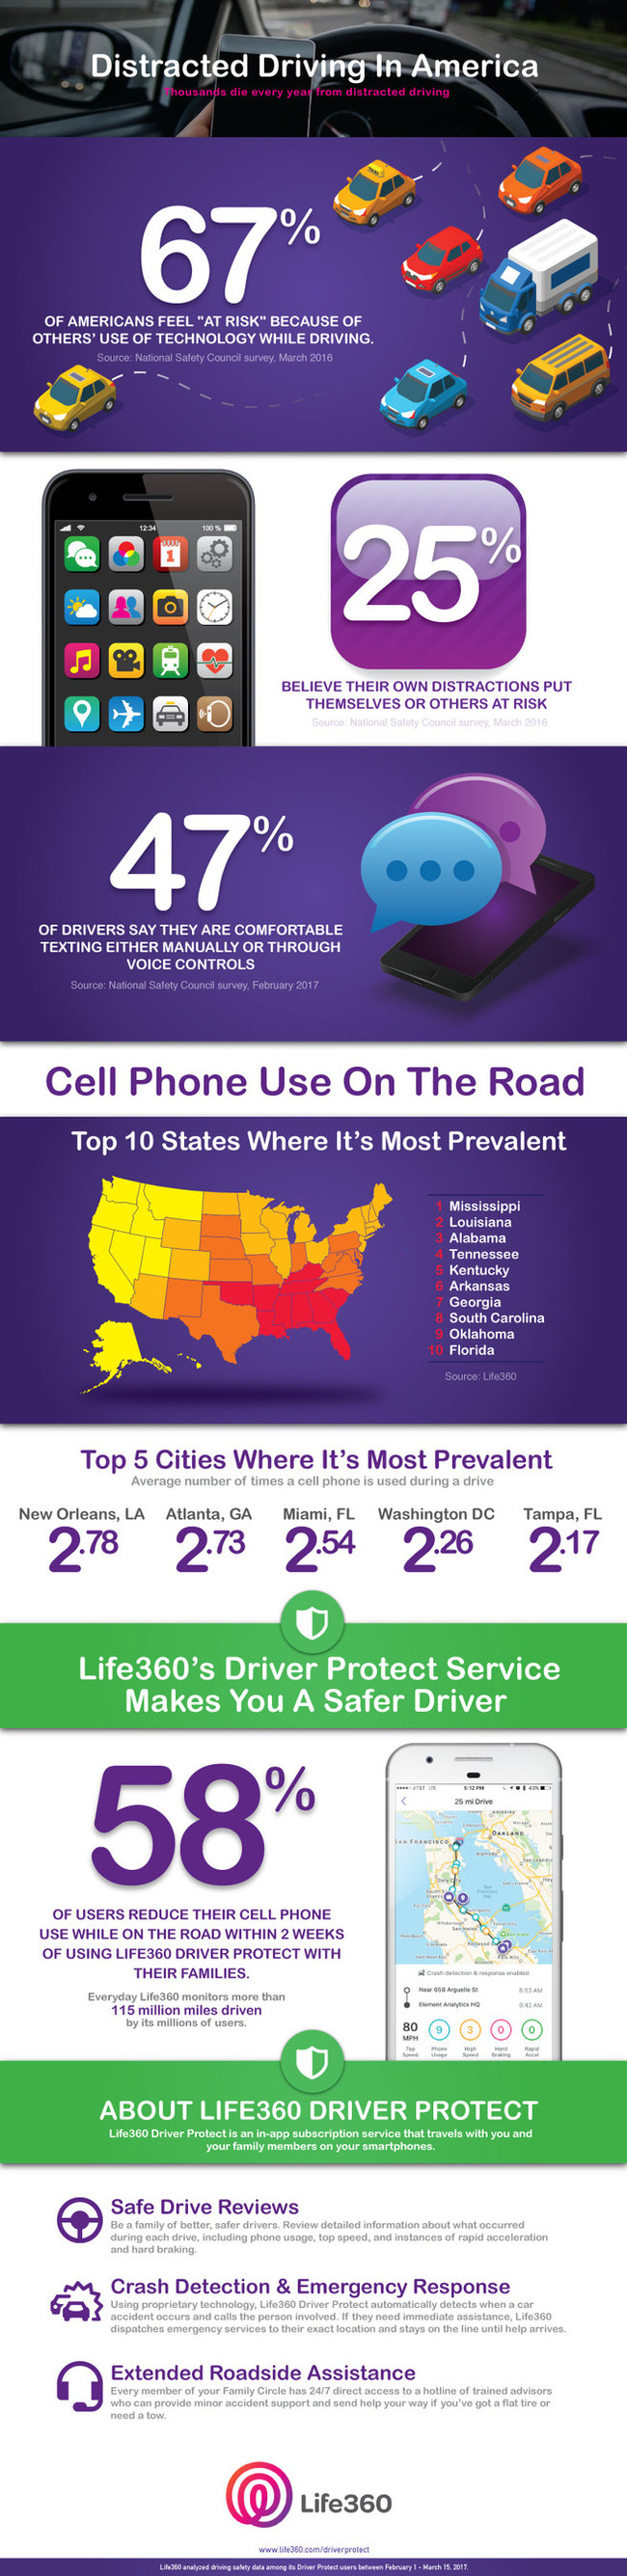 Life360 Driving Behavior Data Reveals Distracted Driving